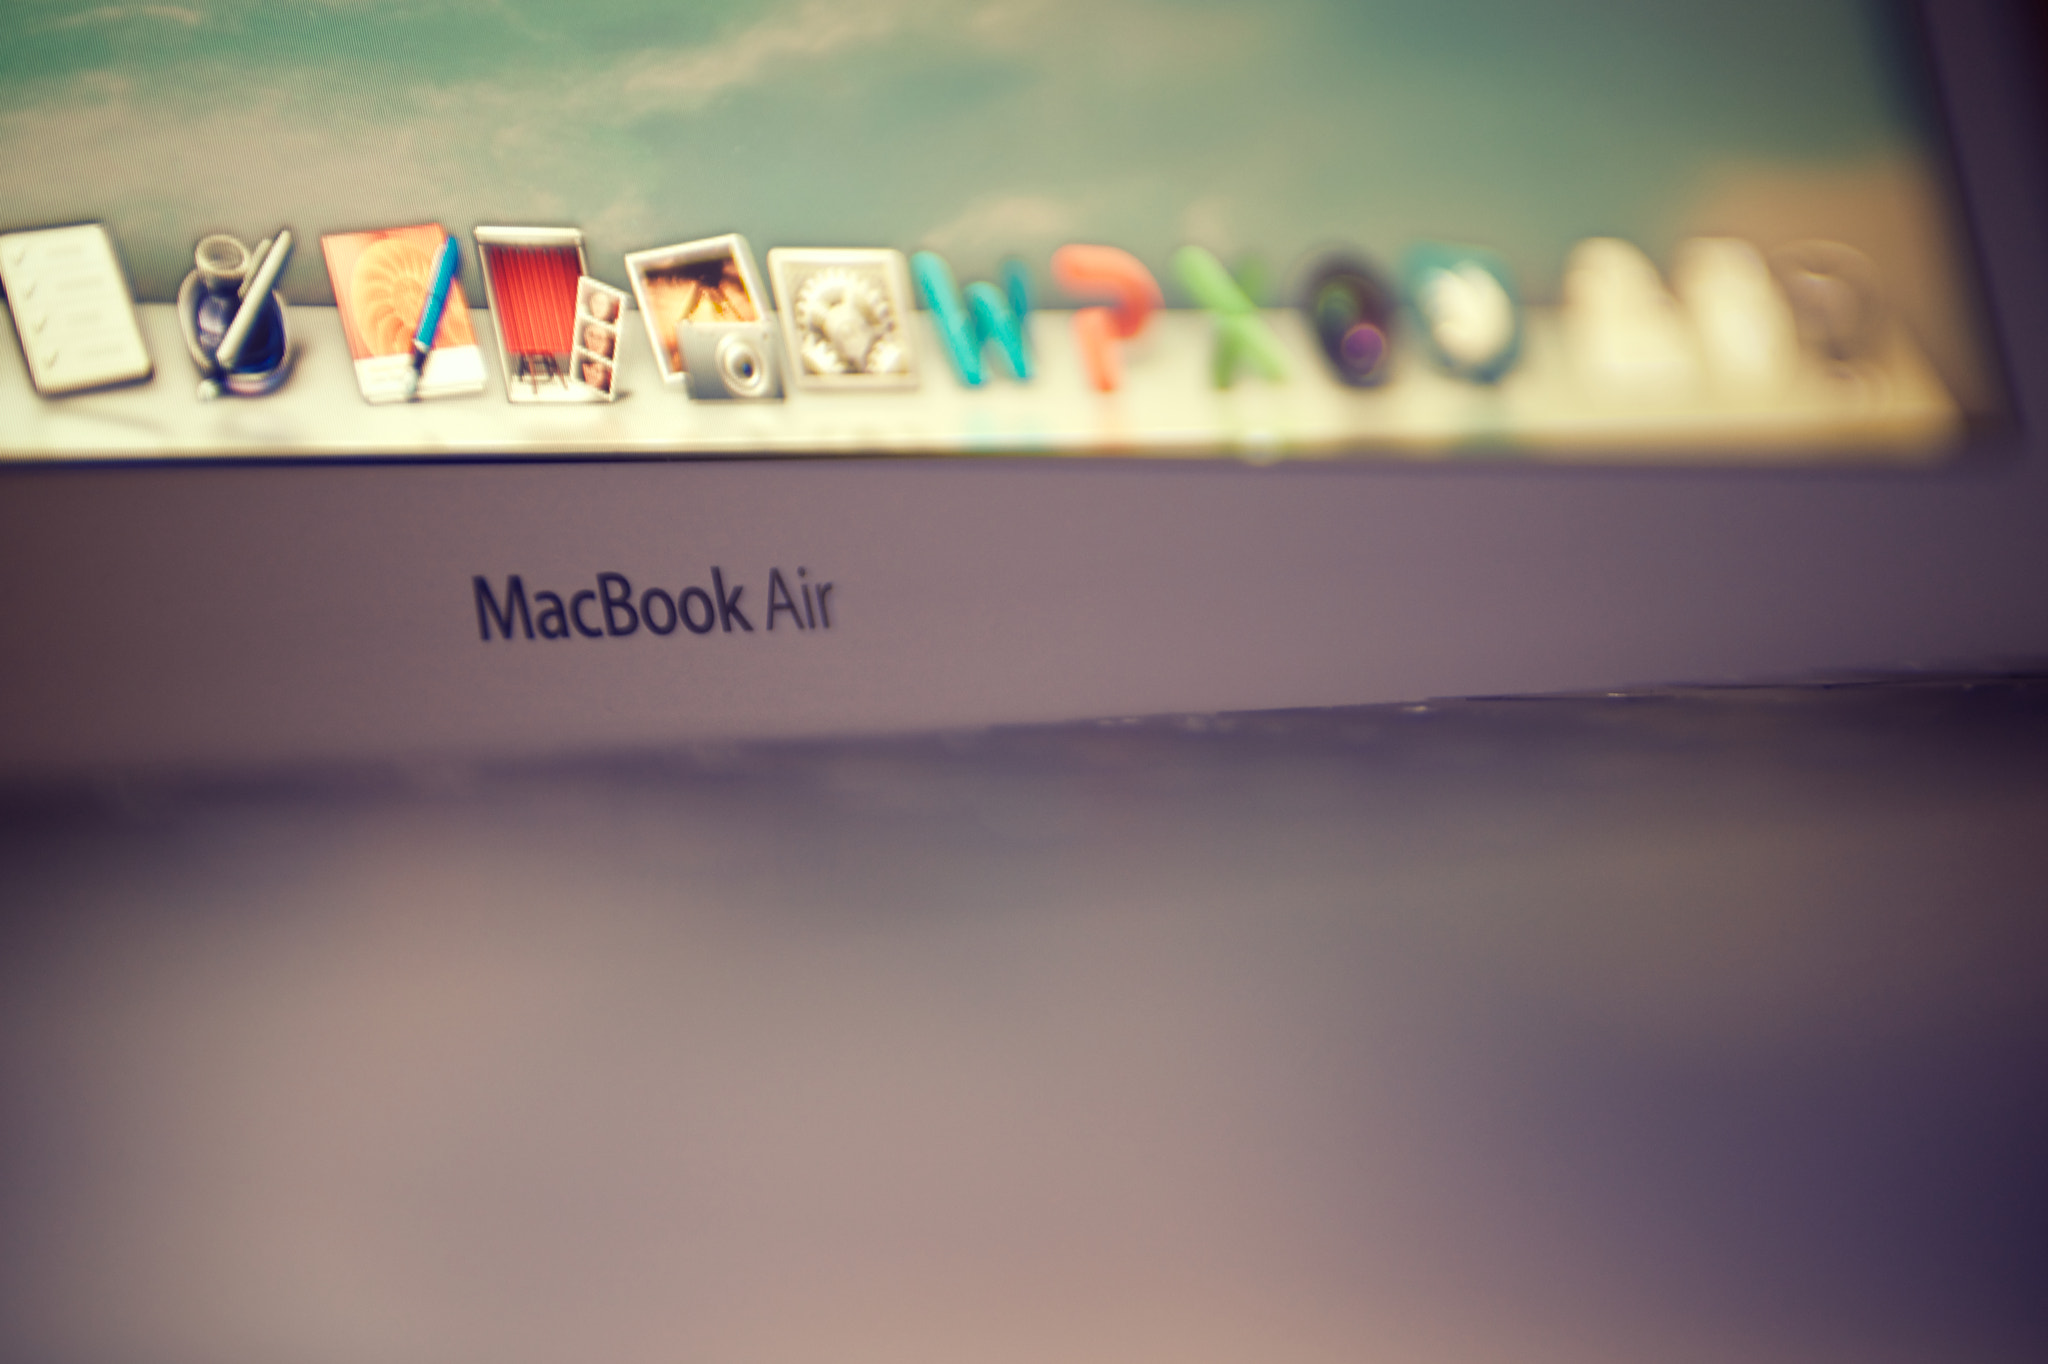 Photograph Macbook Air by James Johnson on 500px